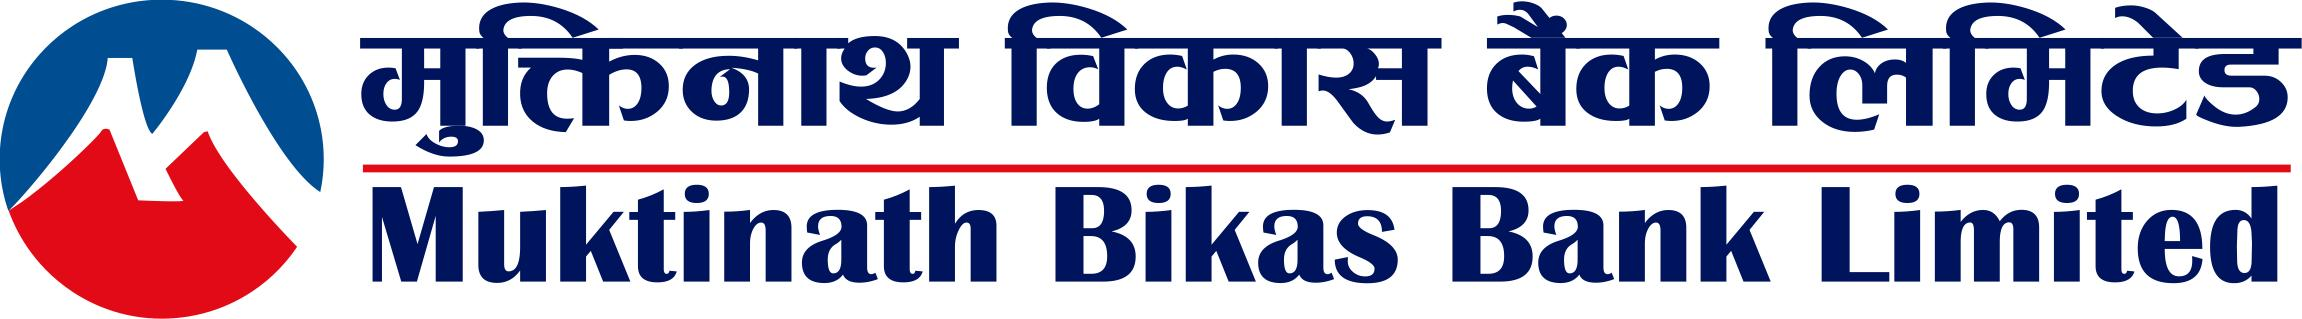 SEBON Approves 20% Right Share of Muktinath Bikas Bank